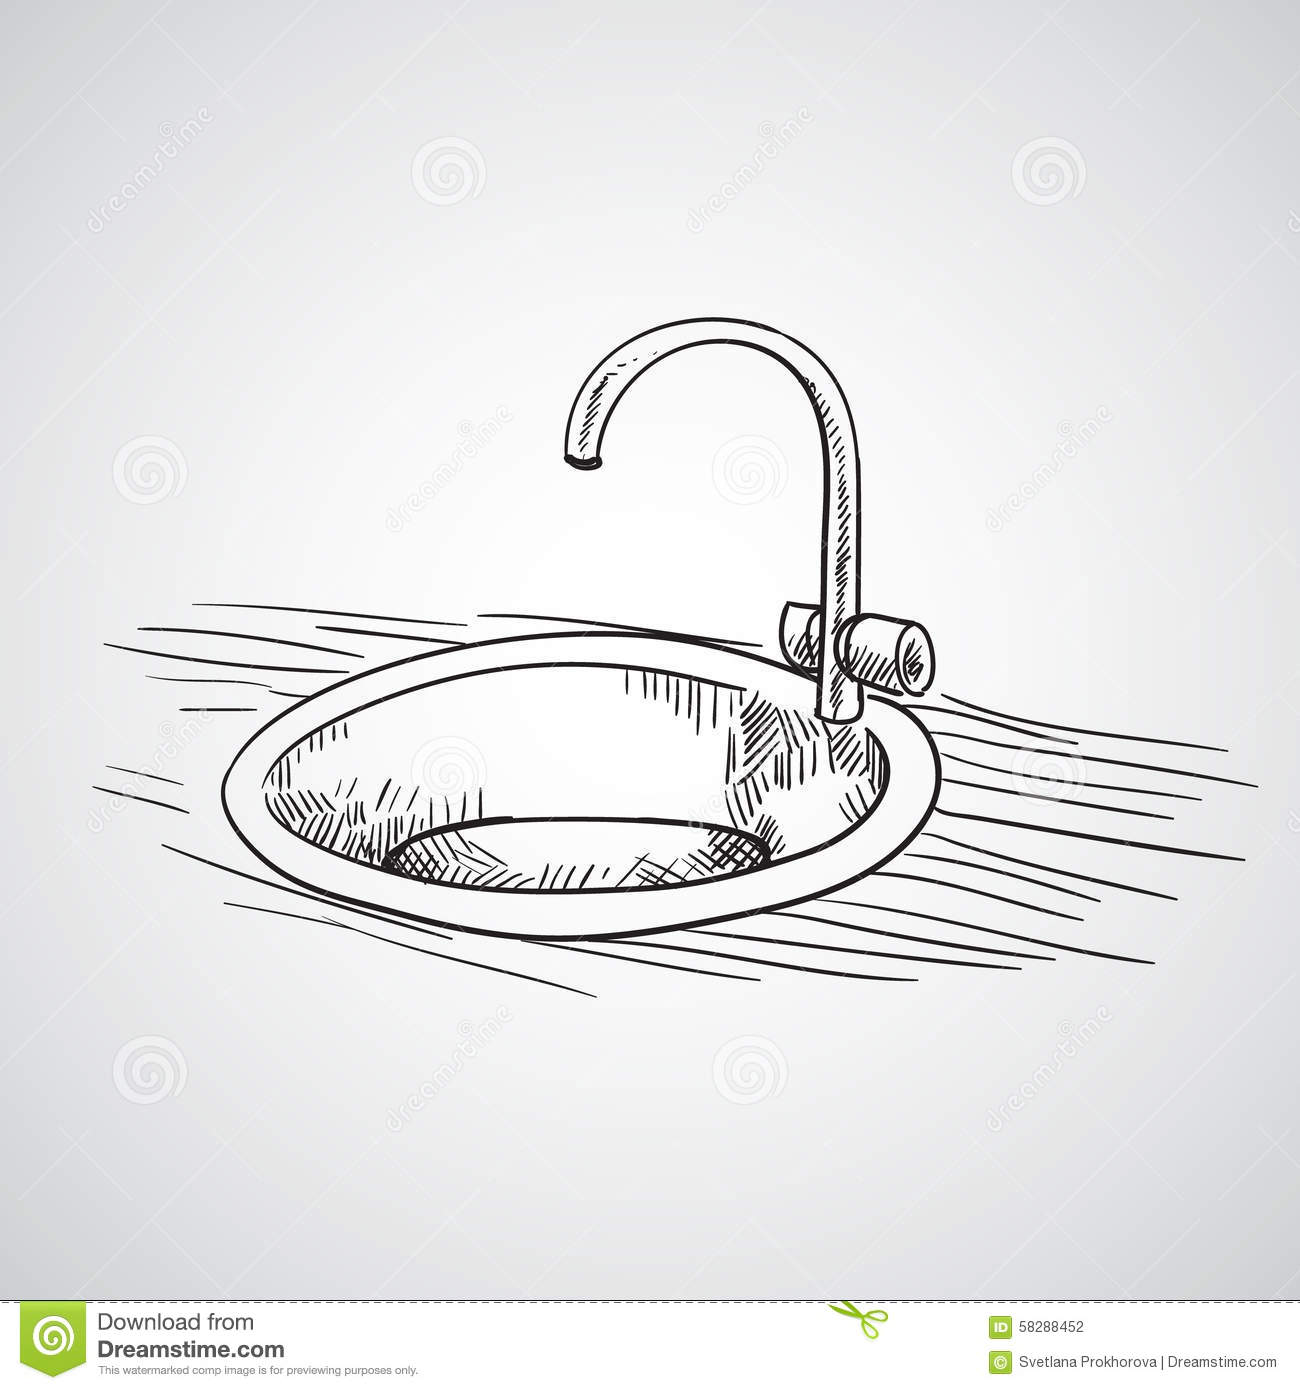 Bathroom sink drawing - Hand Drawn Sketch Hand Drawn Sketch Stock Vector Image 58288452